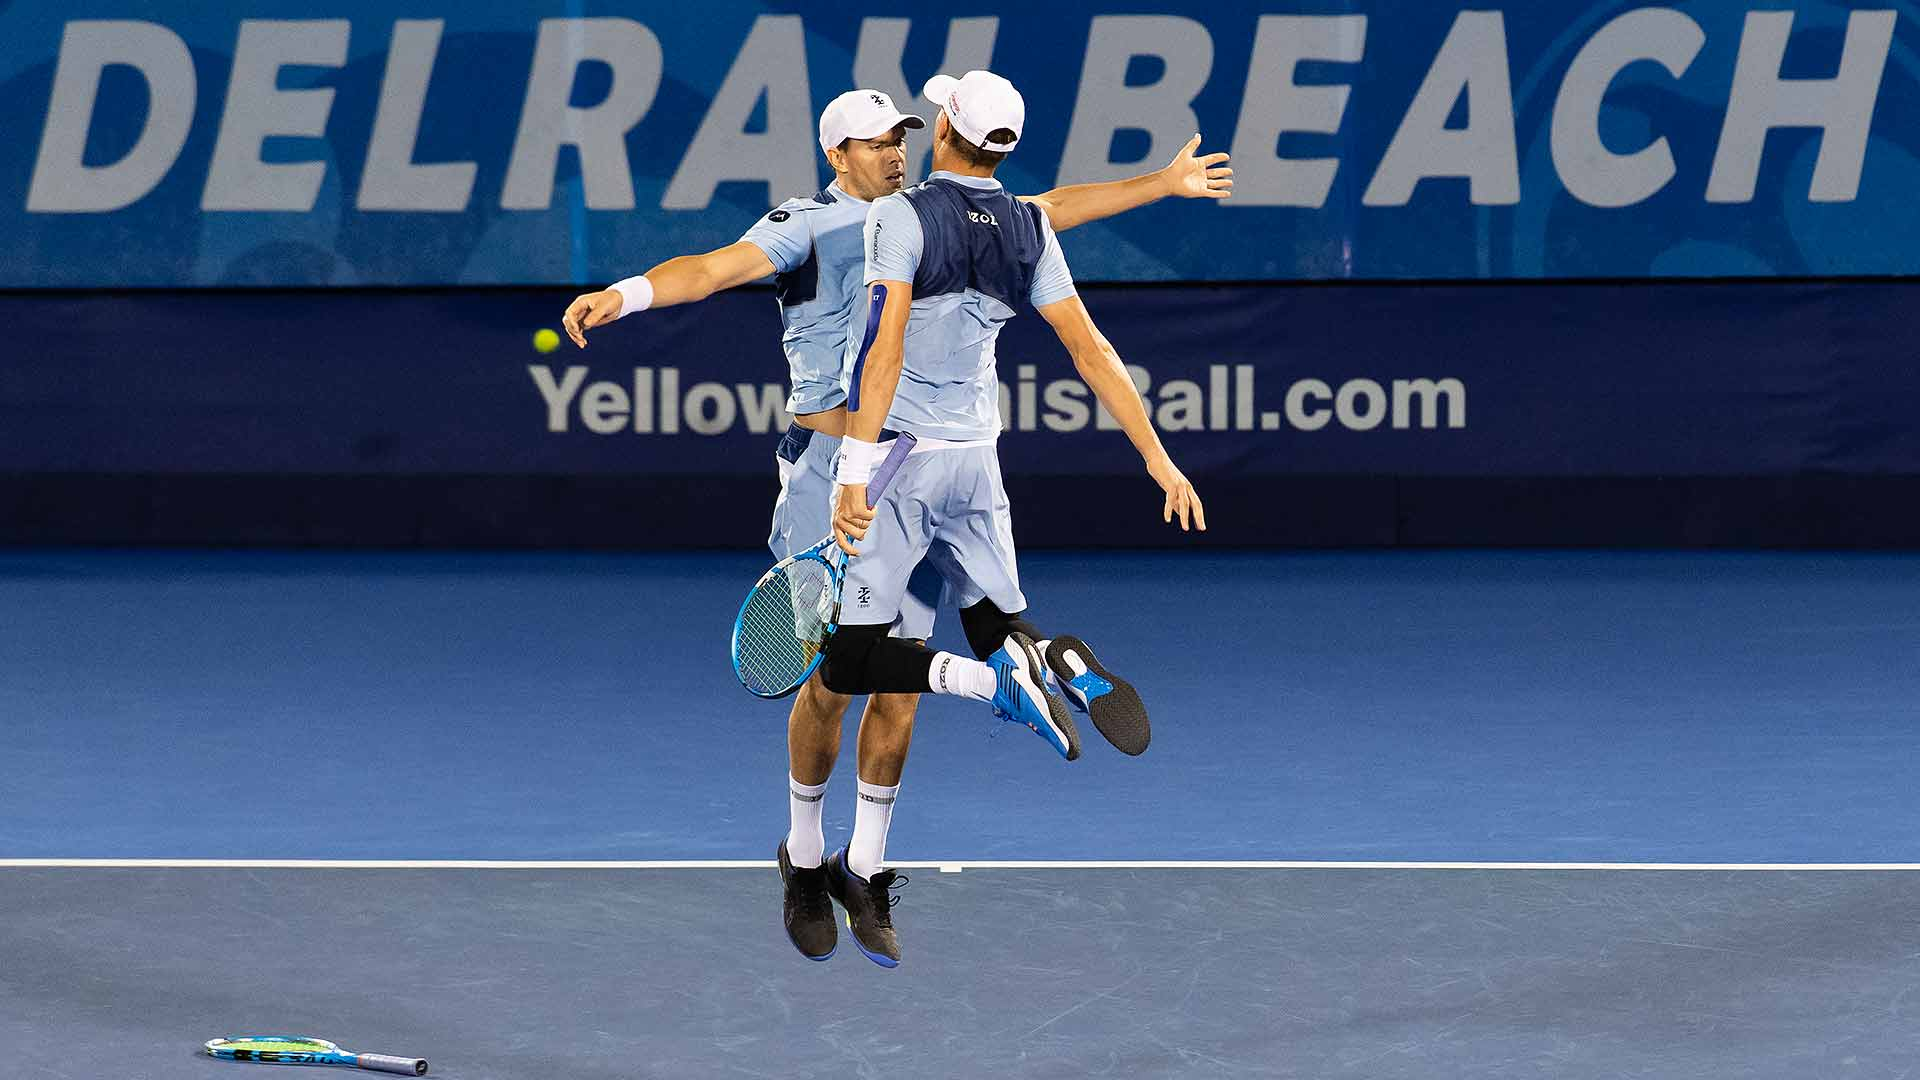 Bryans win in Delray Beach